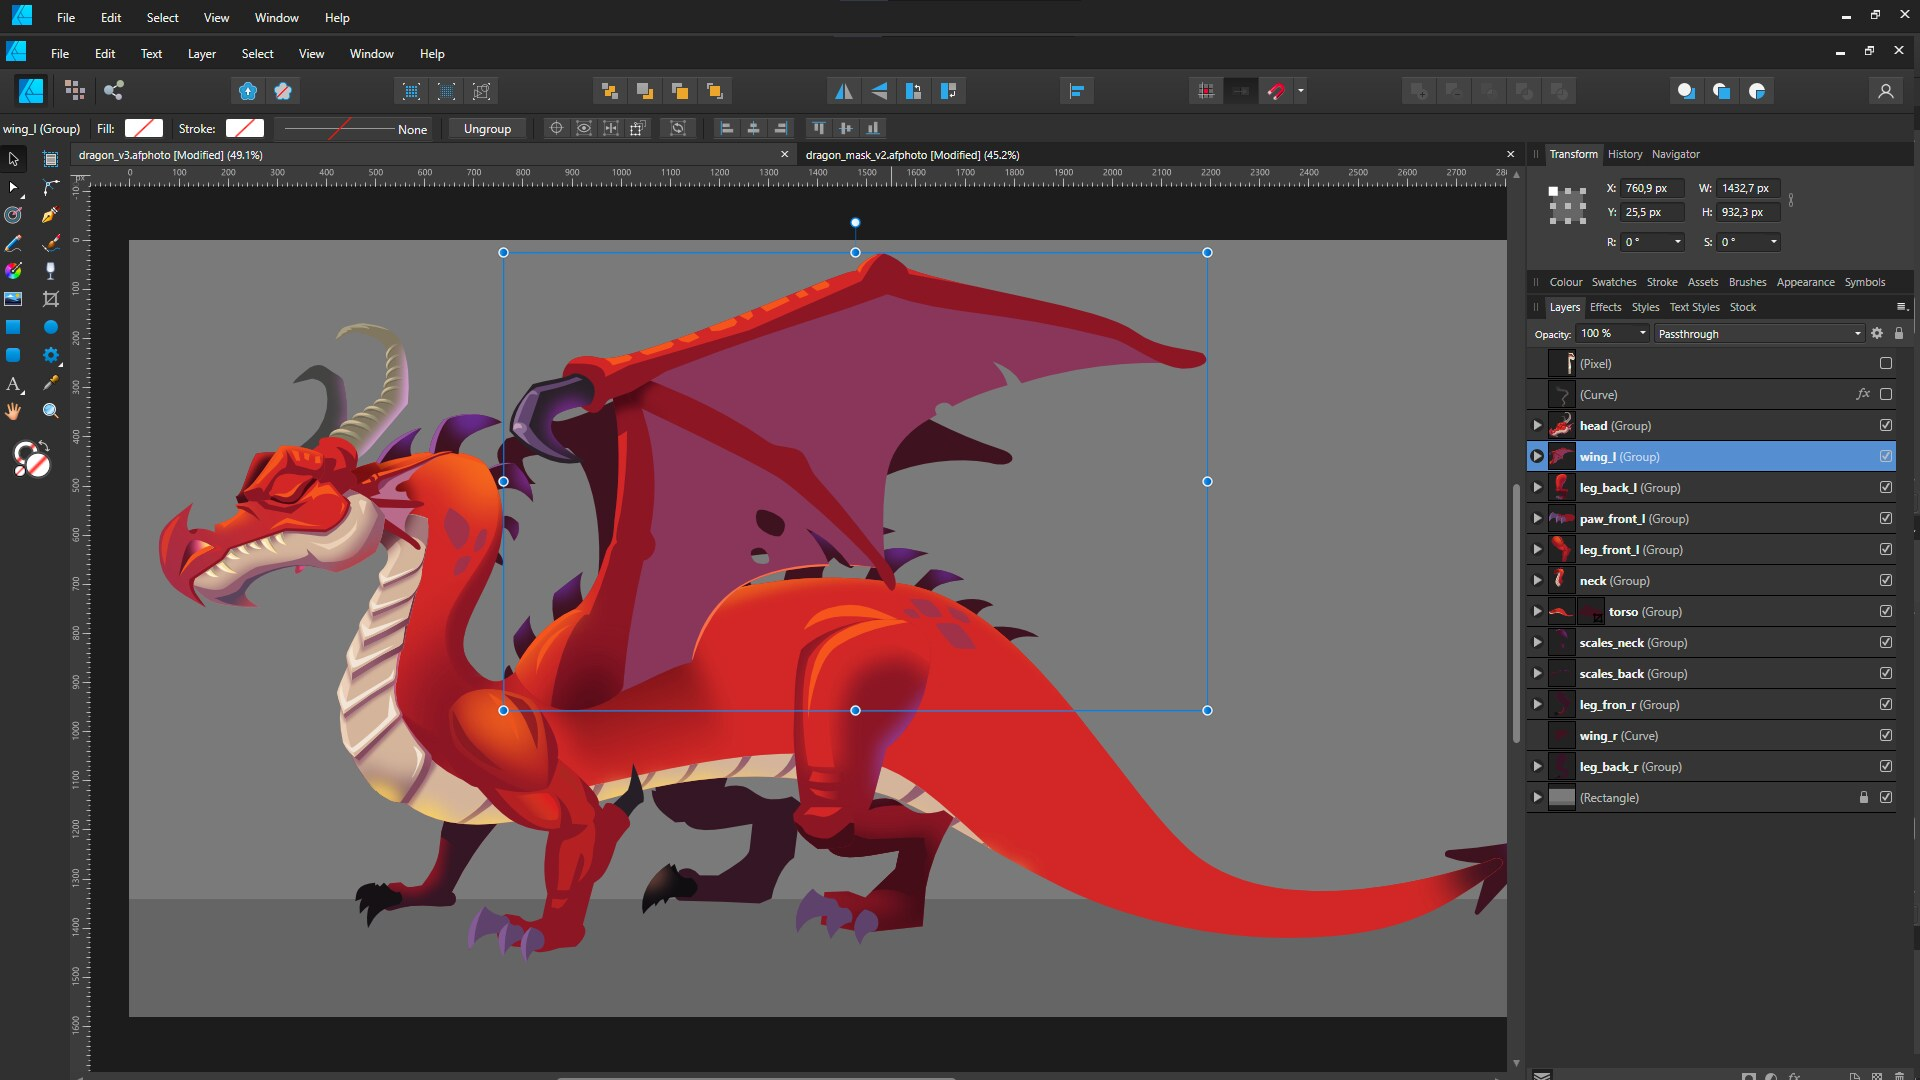 Image of dragon made using vector graphics